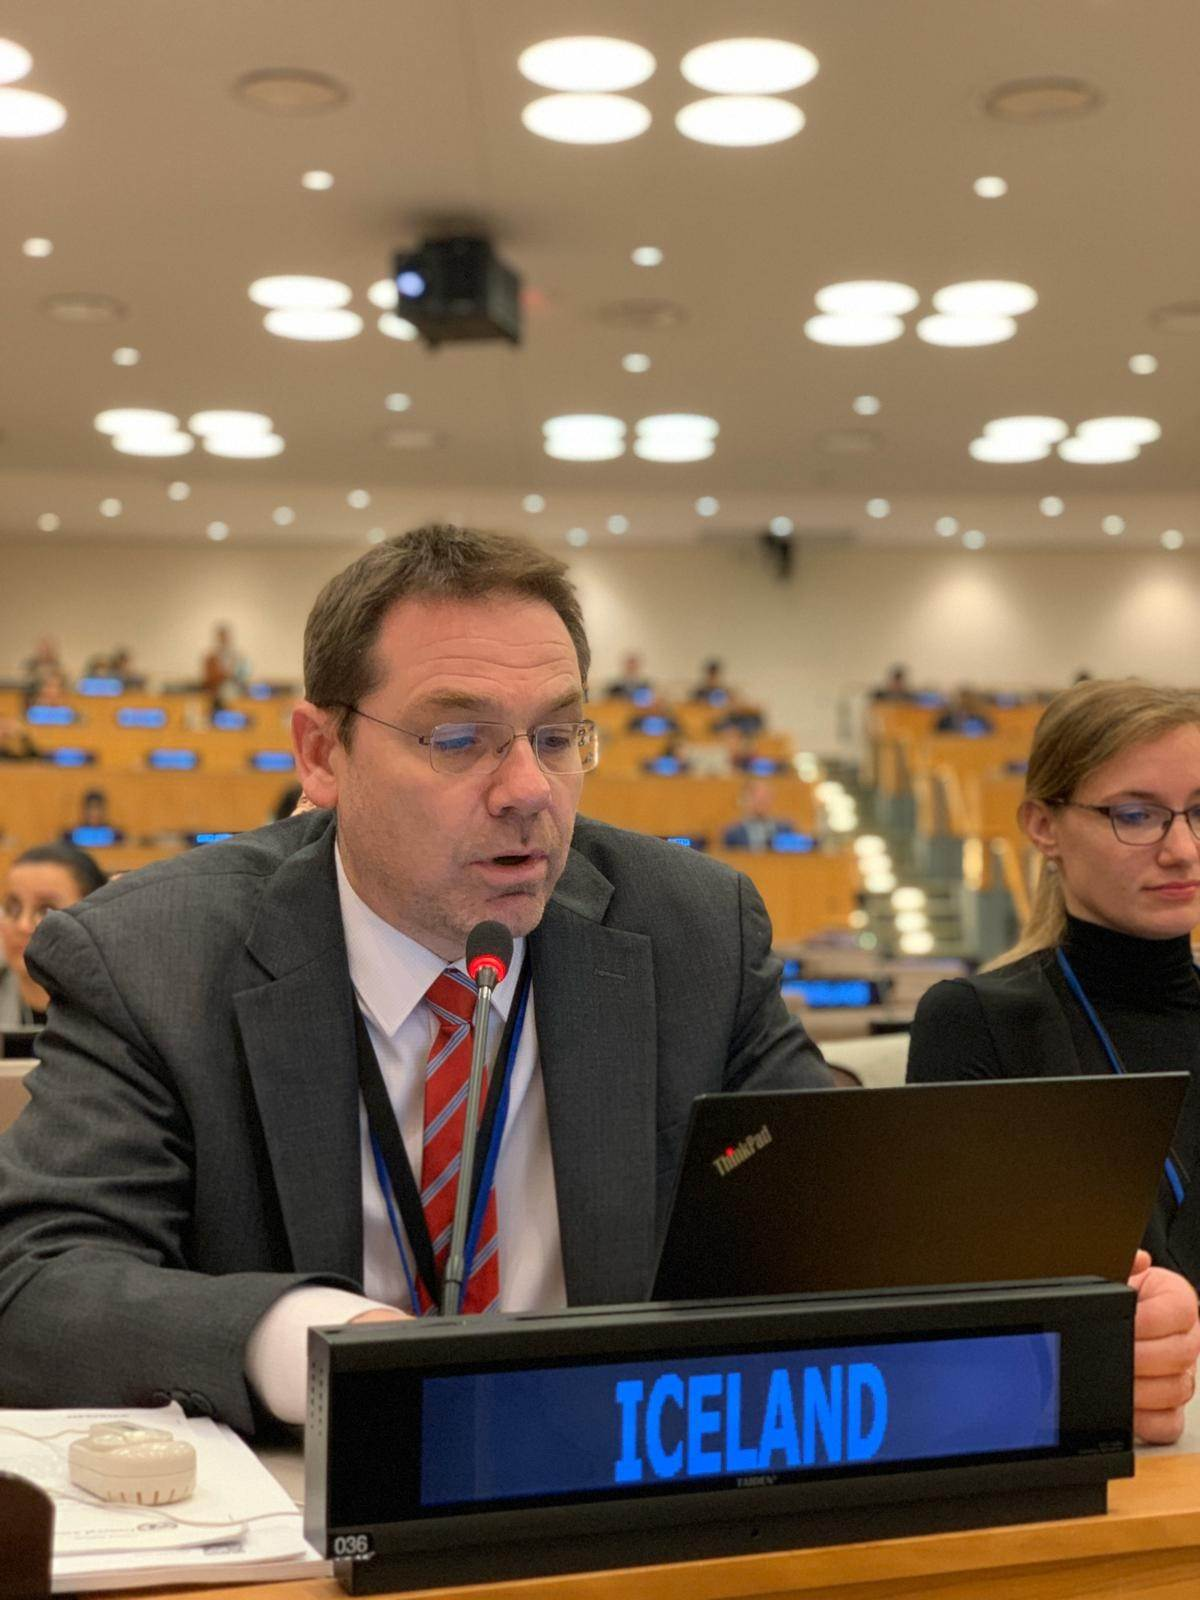 Statement by Davíð Logi Sigurðsson, Director for Human Rights to the Third Committee - mynd